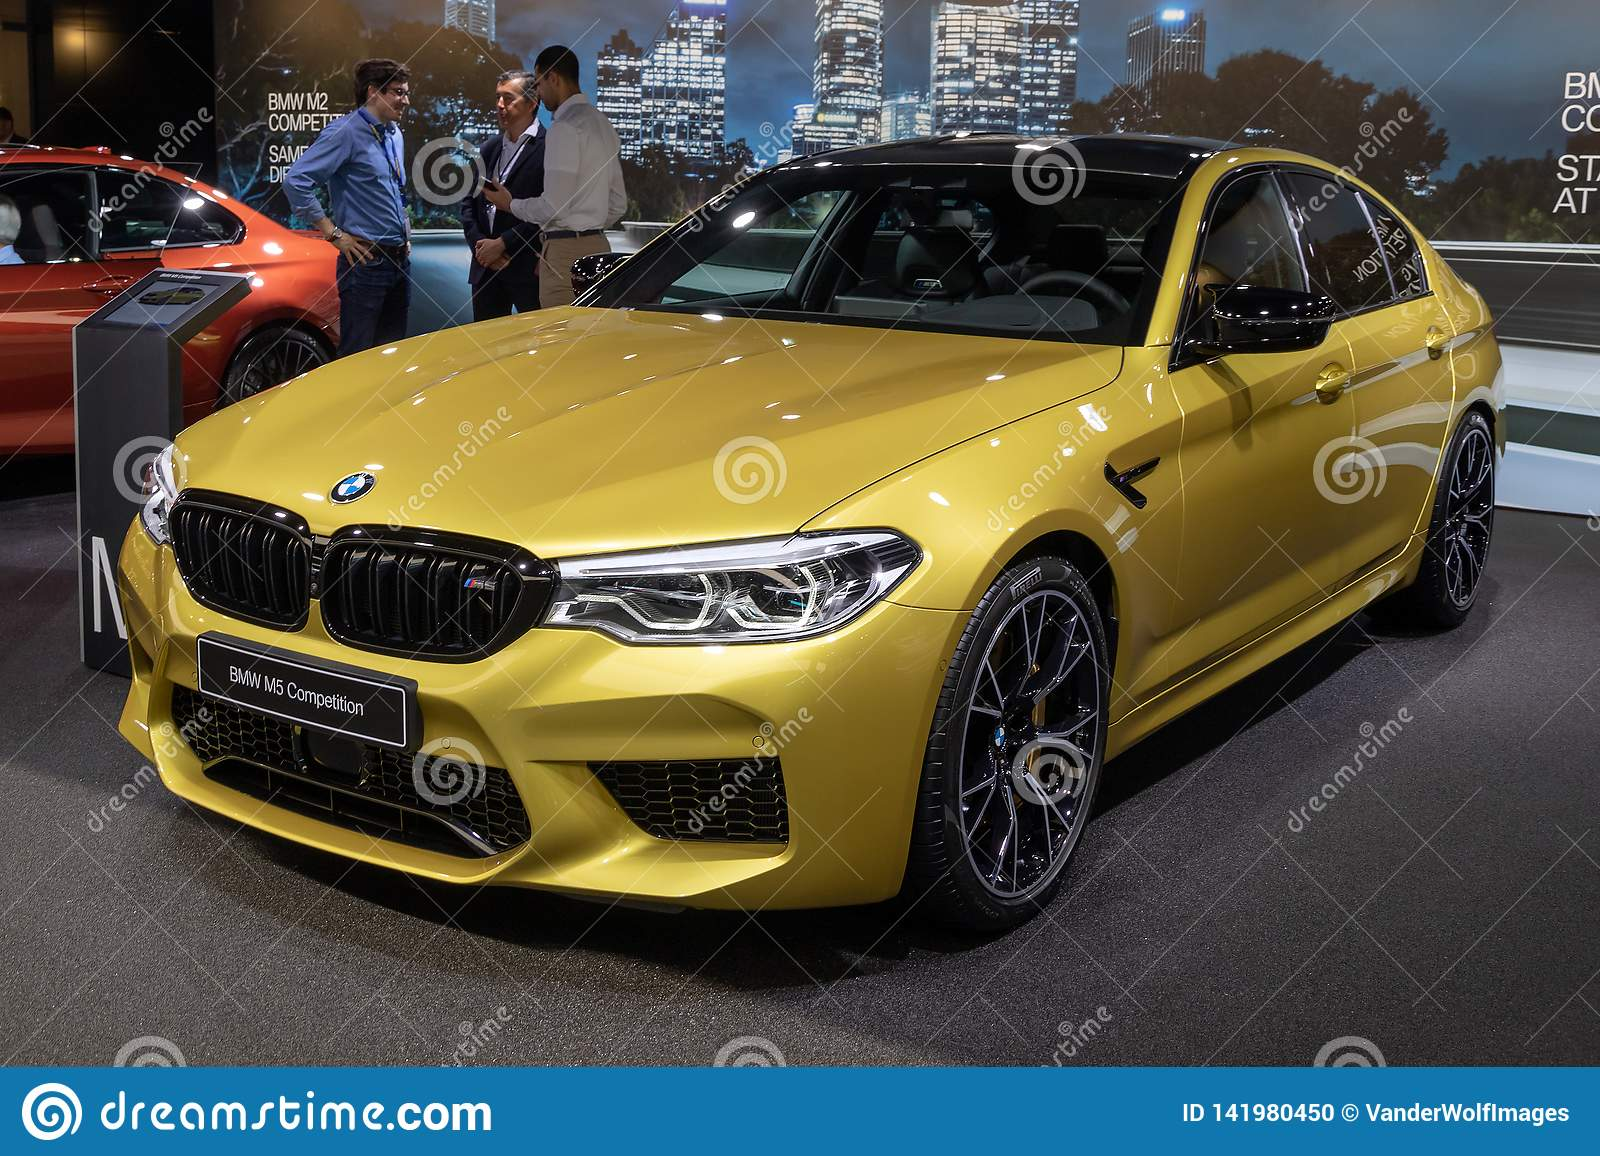 Bmw M5 Competition Car Editorial Image Image Of Automobile 141980450